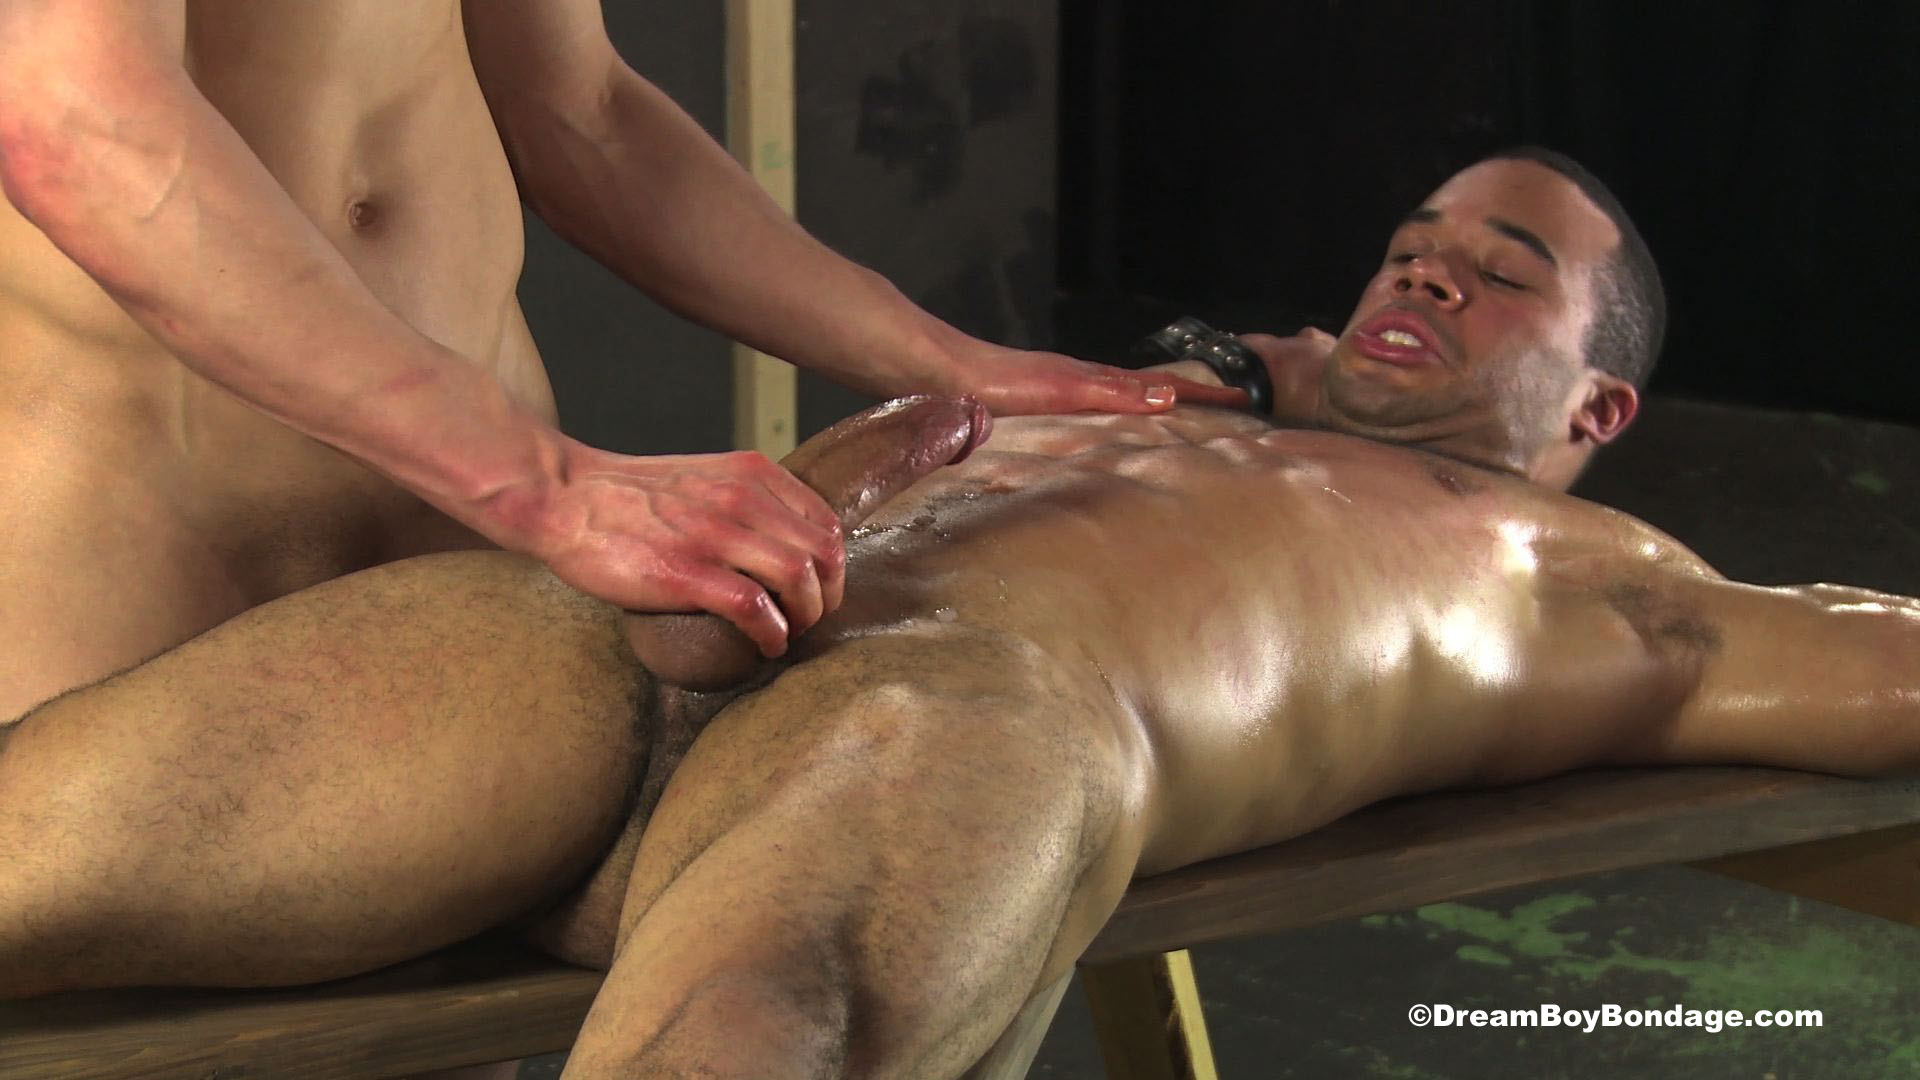 Marine being jerked off by gay xxx 3